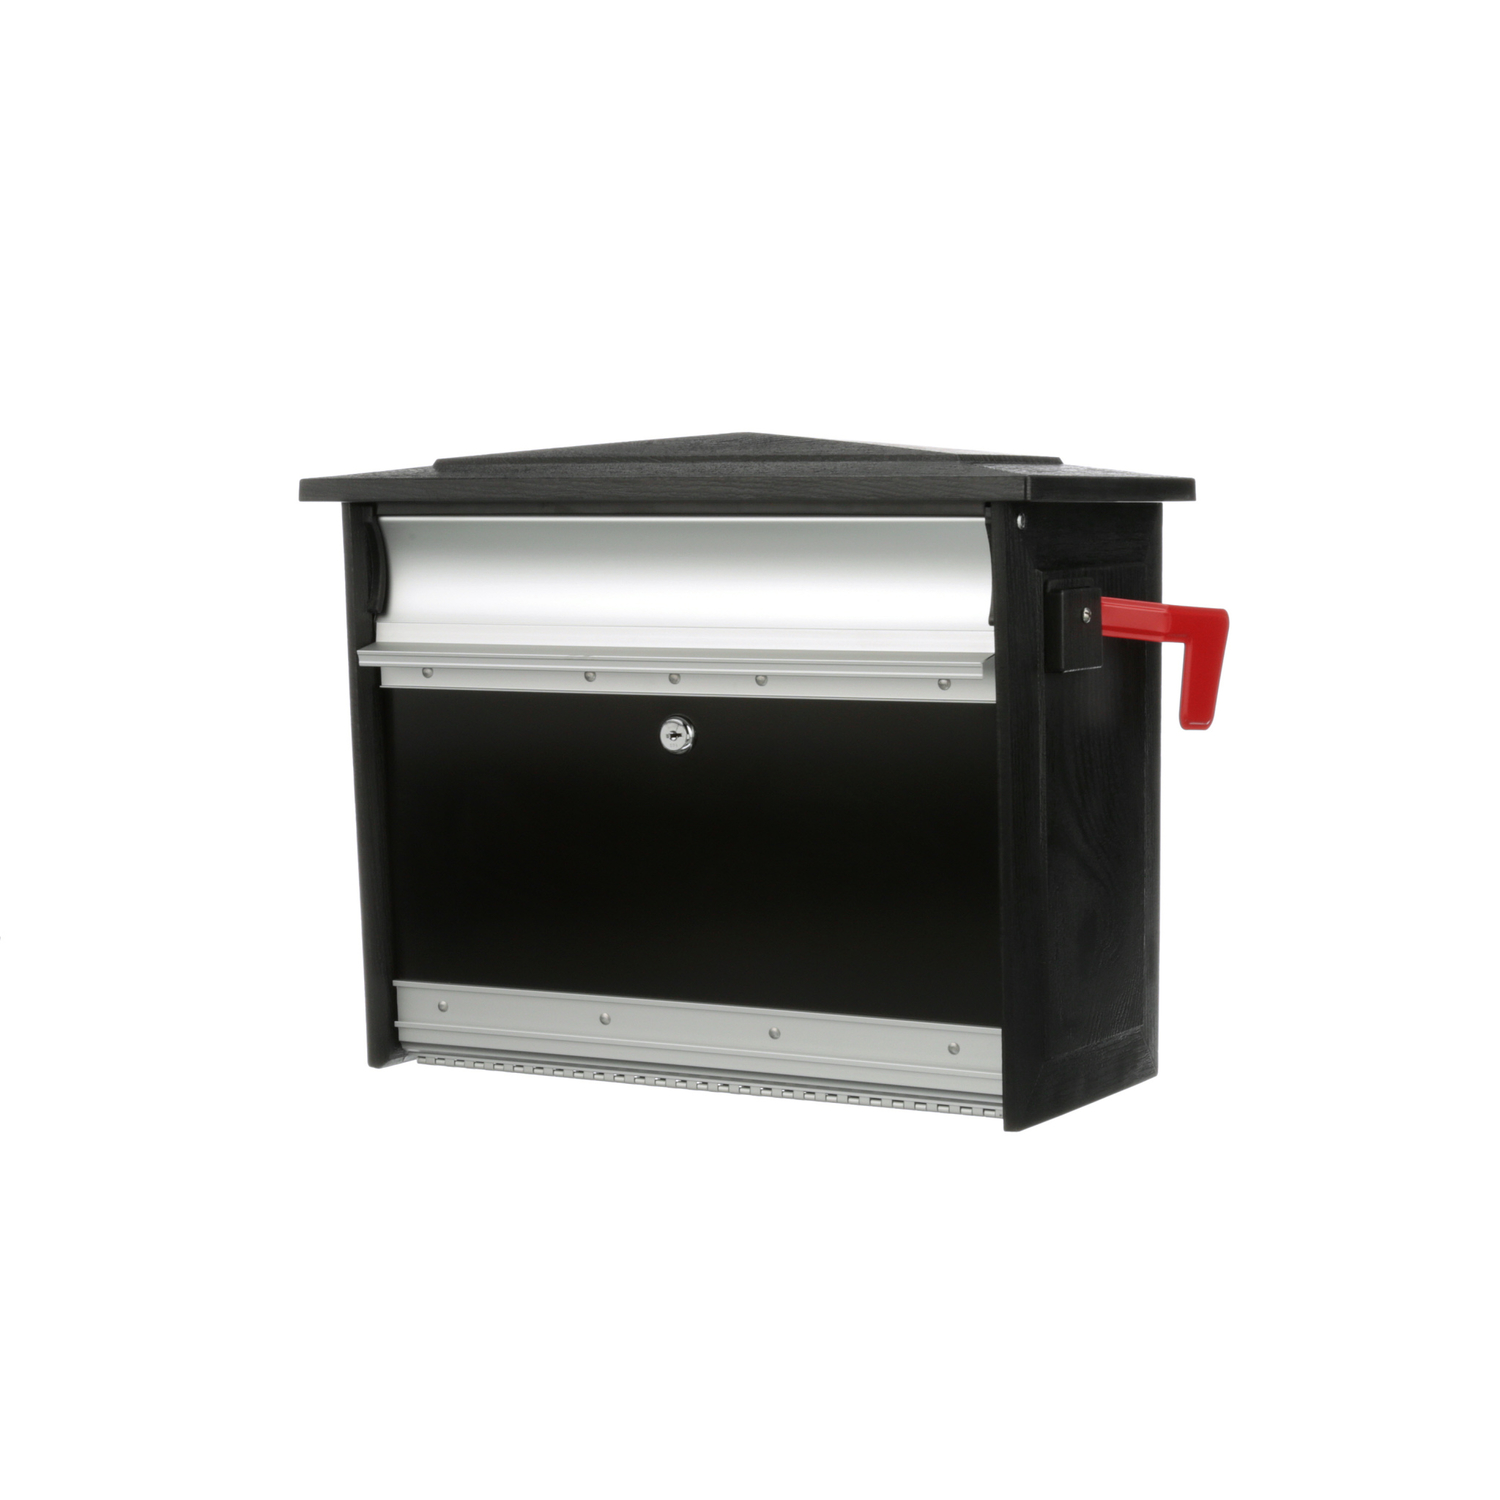 Gibraltar Mailboxes  Mailsafe  Steel  Black  Lockable Mailbox  16-7/8 in. L x 13-1/4 in. H x 16-7/8